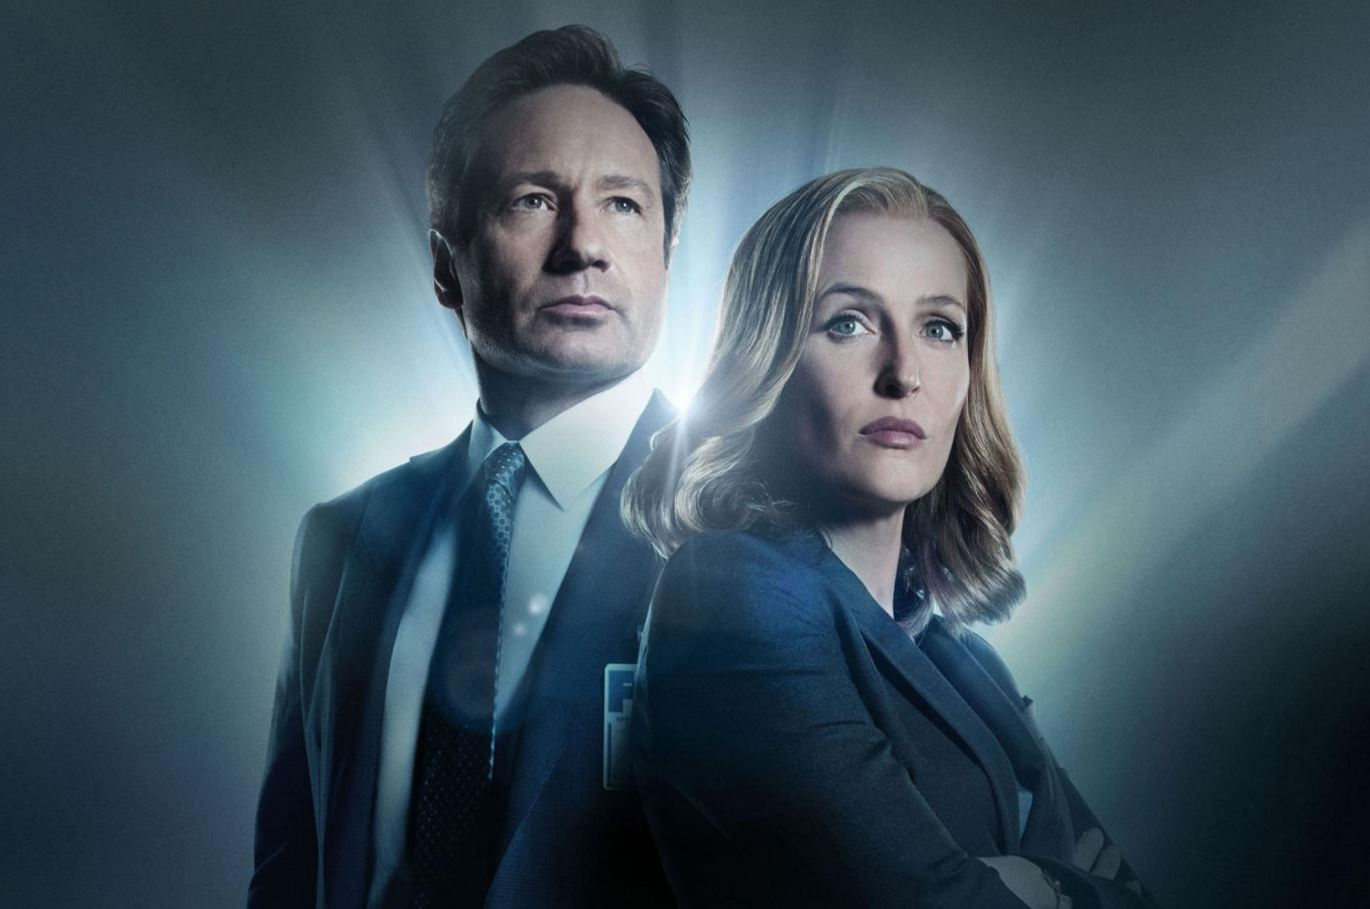 The X-Files has been picked back up by FOX for an 11th season